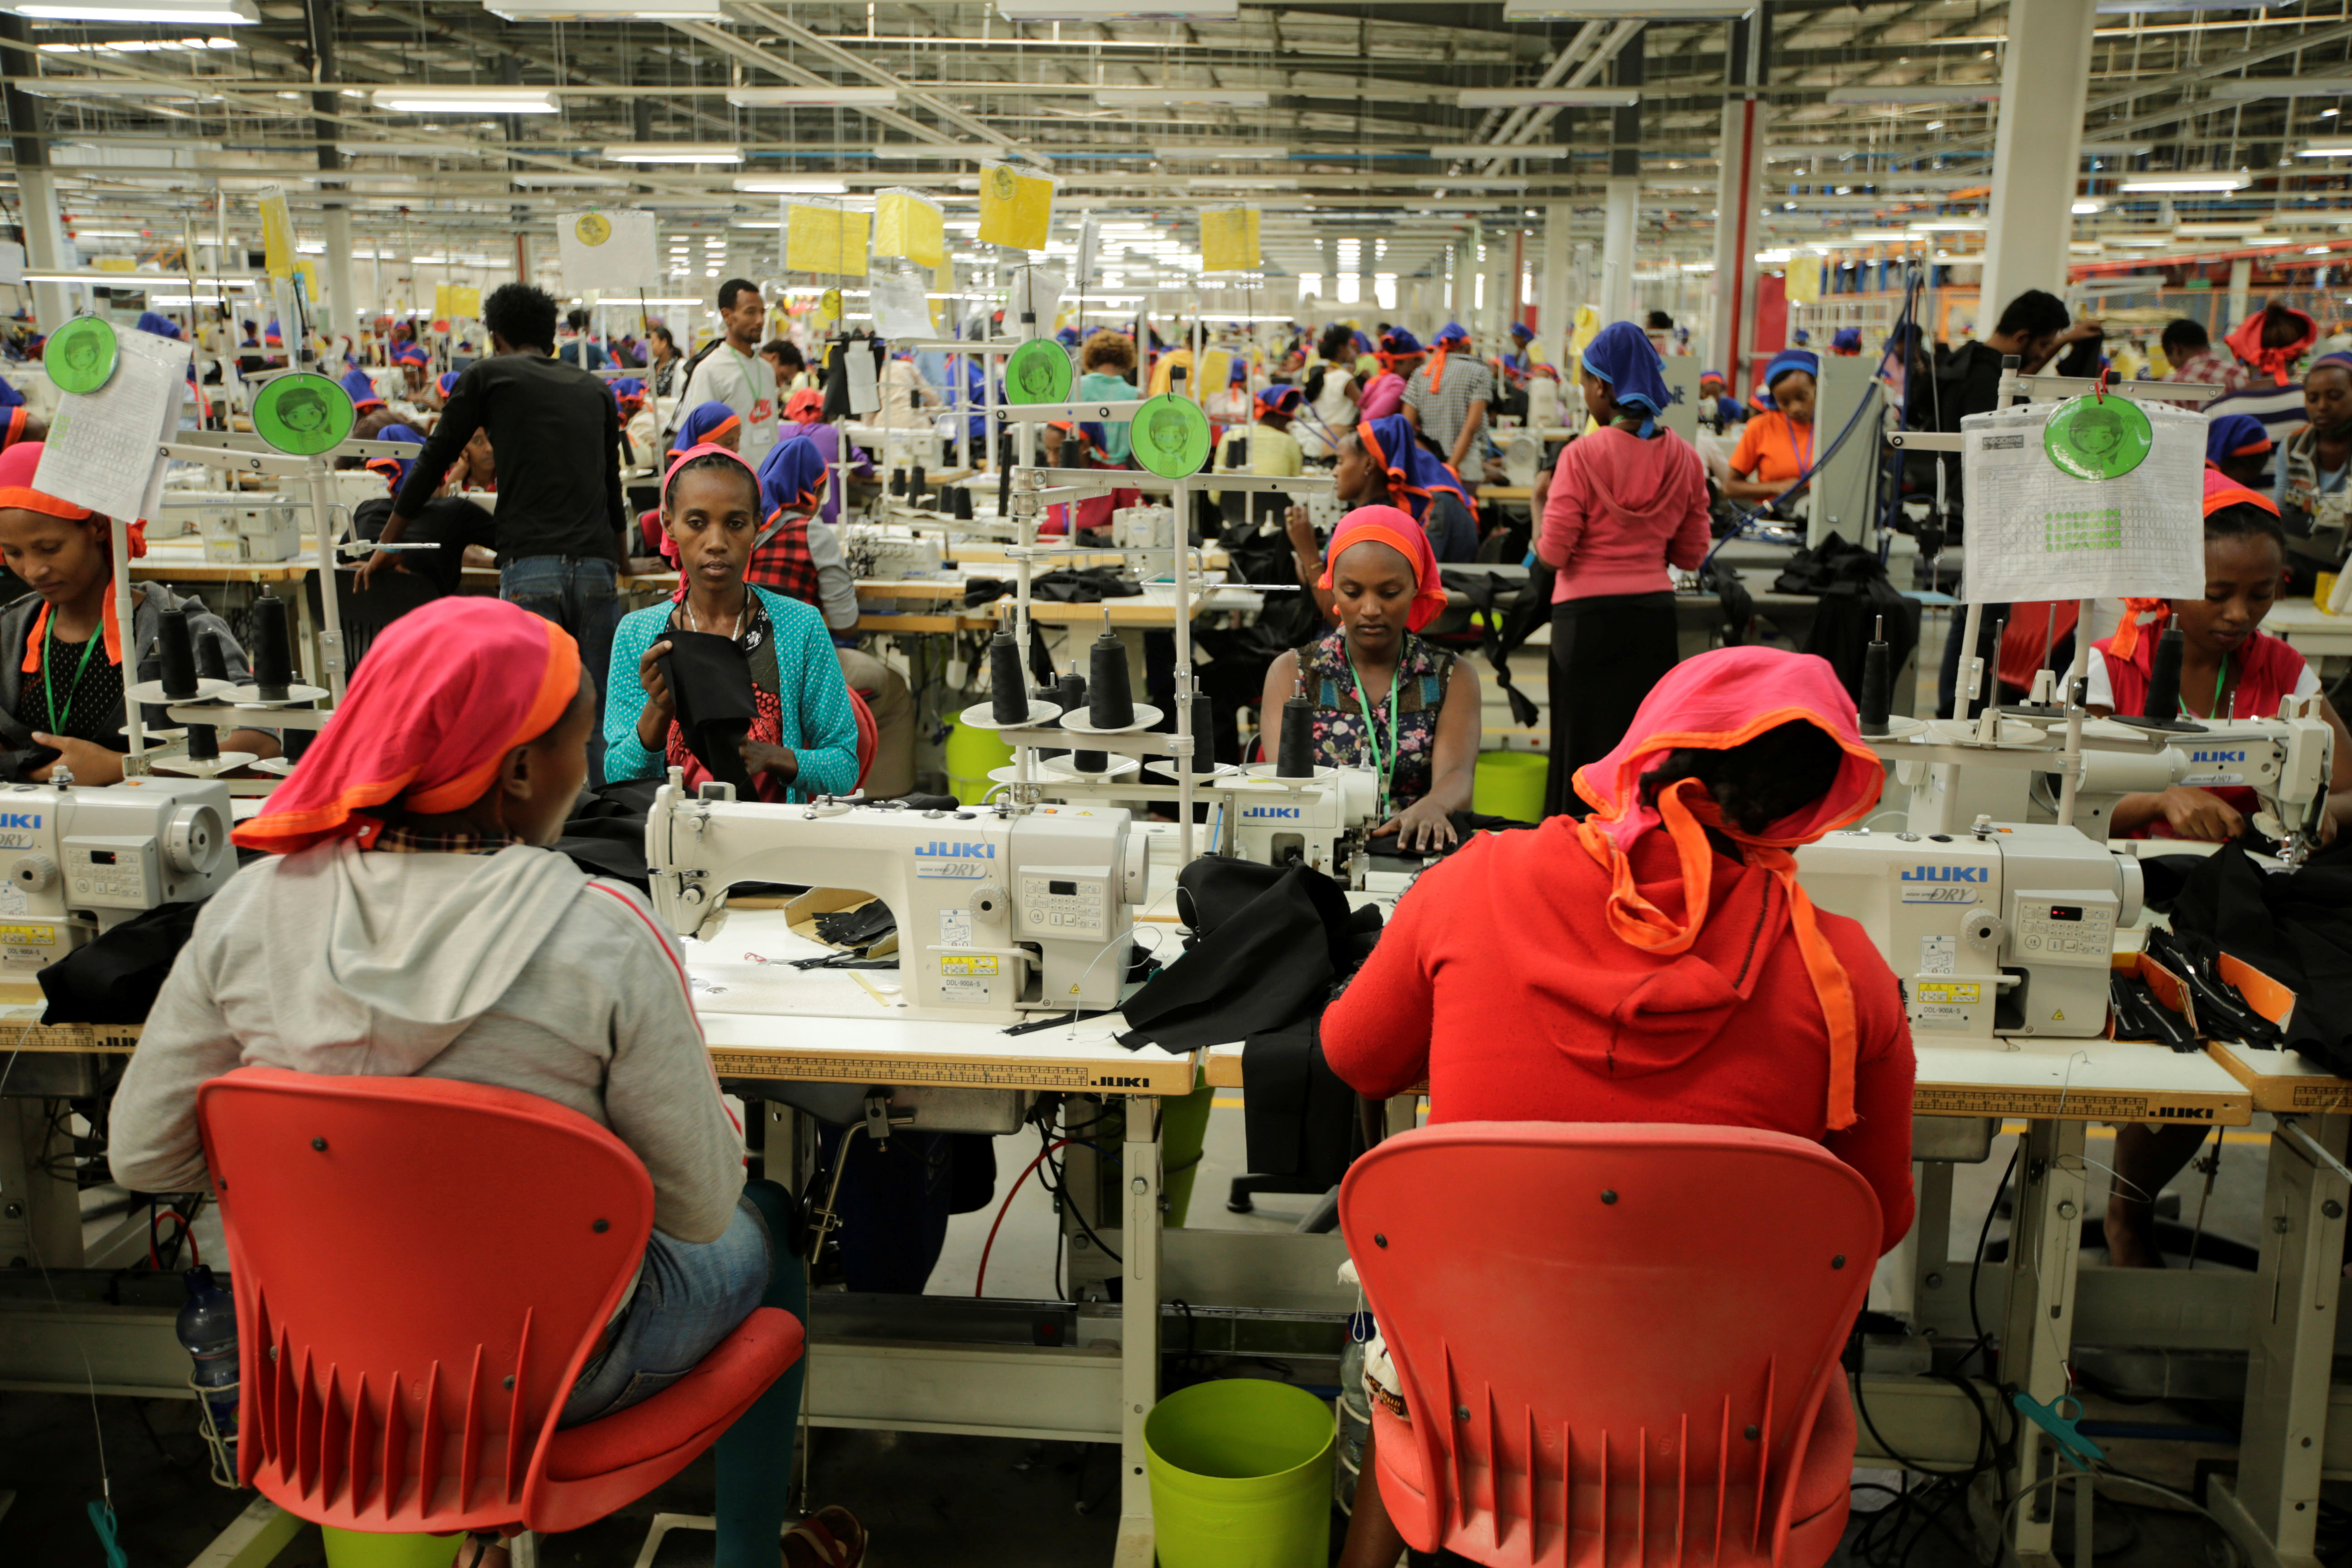 Workers sew clothes inside the Indochine Apparel PLC textile factory in Hawassa Industrial Park in Southern Nations, Nationalities and Peoples region, Ethiopia November 17, 2017. Picture taken November 17, 2017.REUTERS/Tiksa Negeri - RC17B0E7FE80